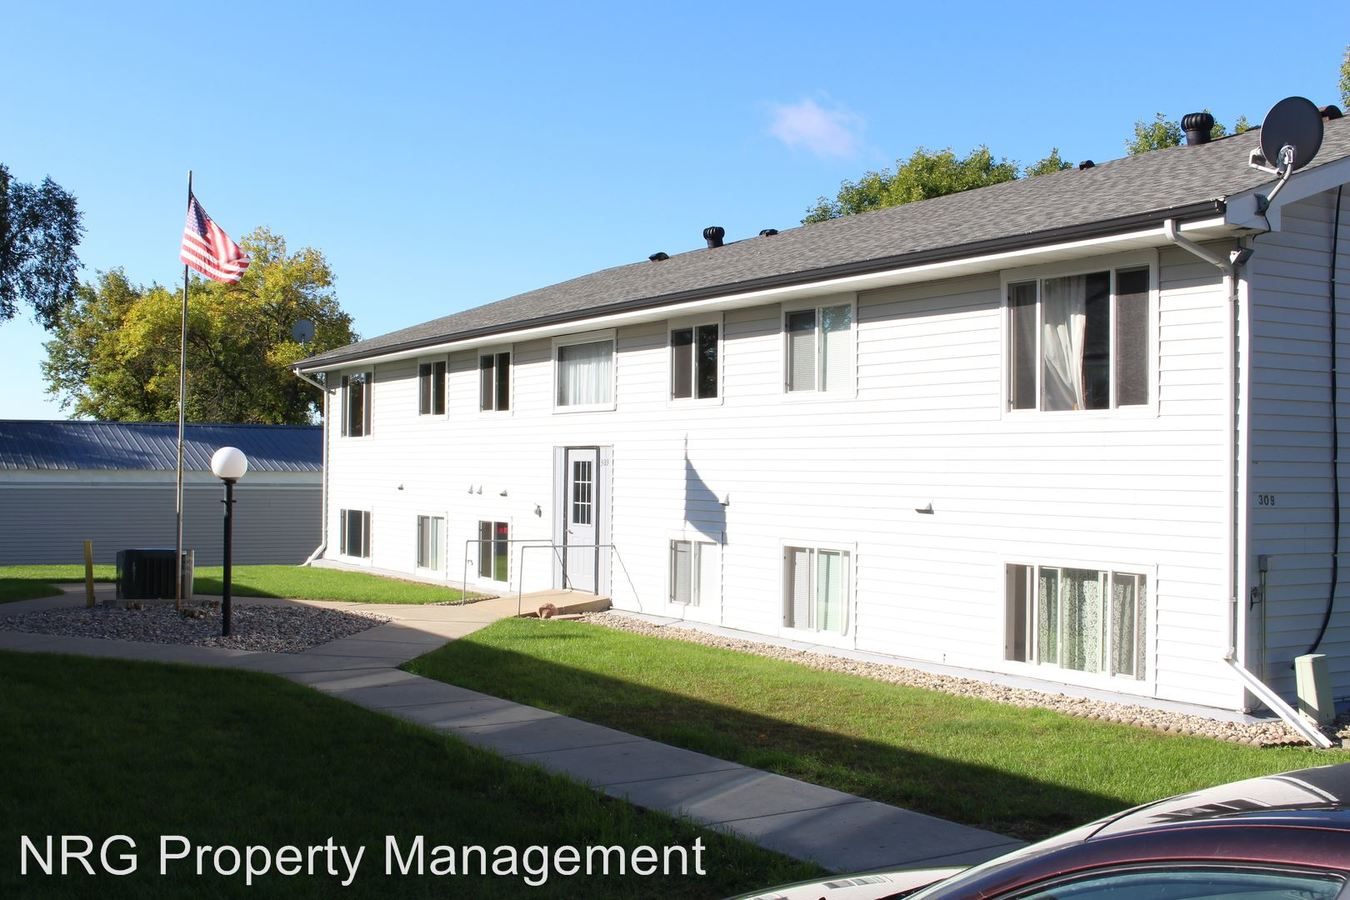 2 Bedrooms 1 Bathroom Apartment for rent at 309 & 311 W 9th St in Starbuck, MN